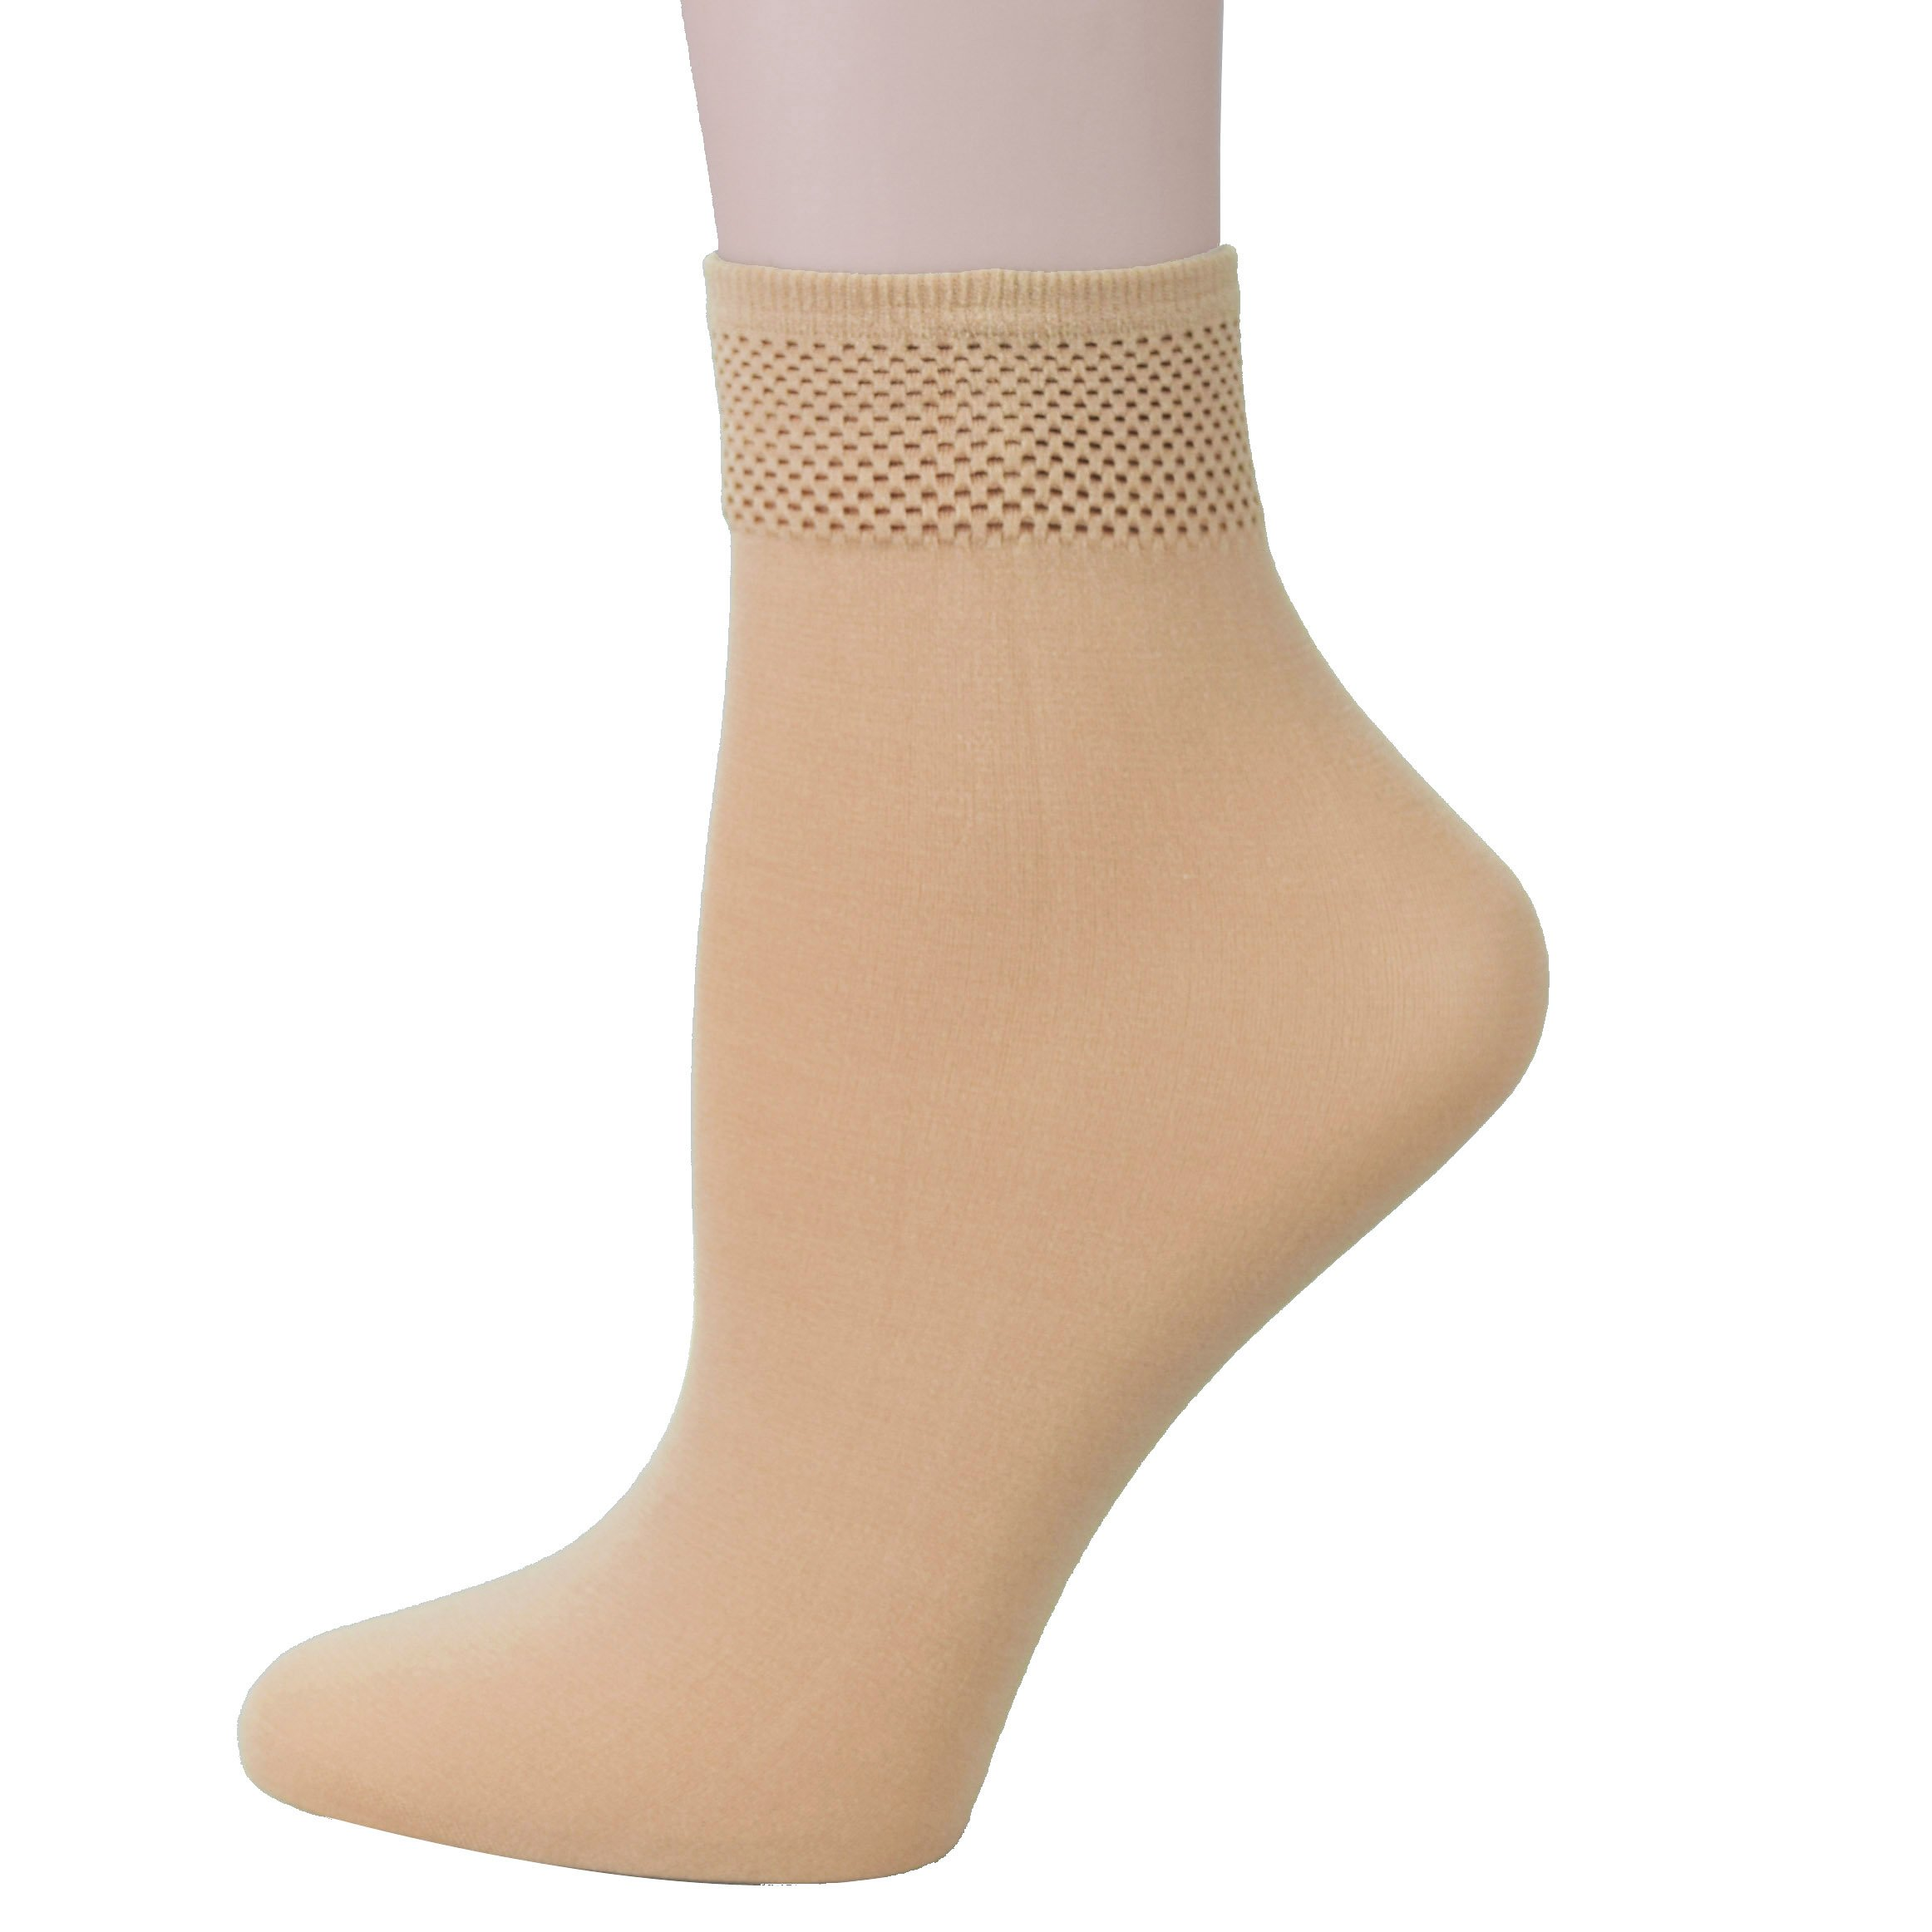 Fitu Women's 10 Pairs Modal Opaque Ankle High Tights Hosiery Socks (Beige) 9-11 Beige